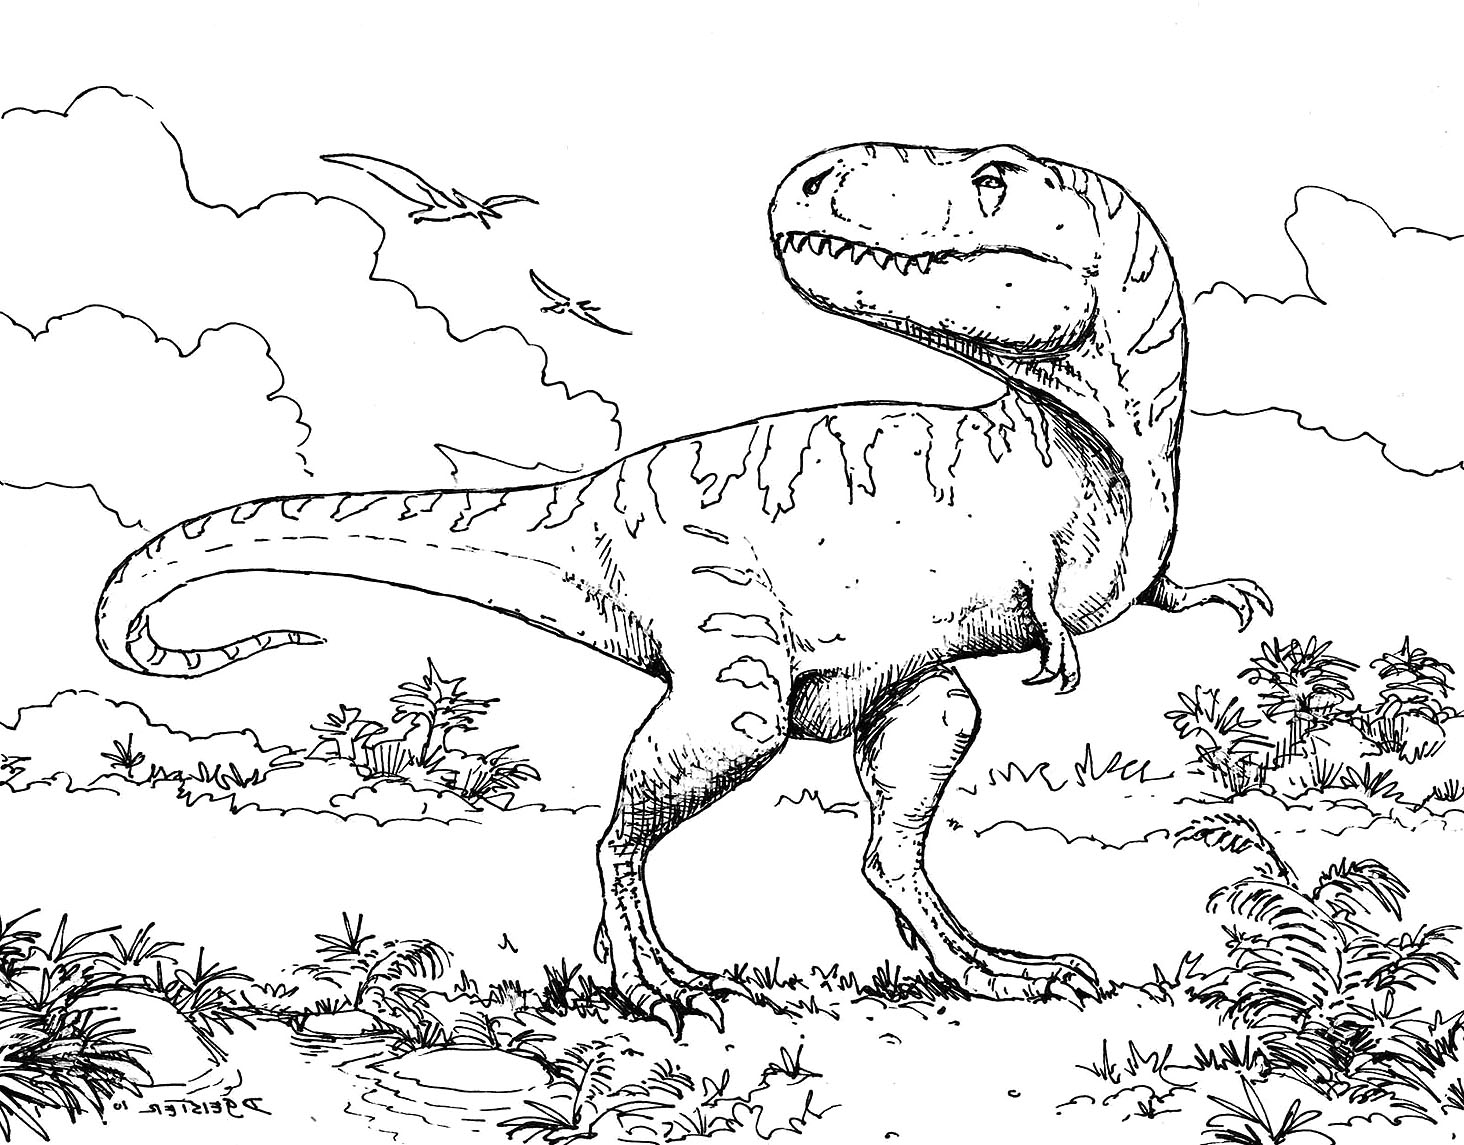 Revisited Colouring Dinosaurs Dino Unknown Collection Of Coloring Book and Pages Free Printable Dinosaur Habitat Coloring Printable